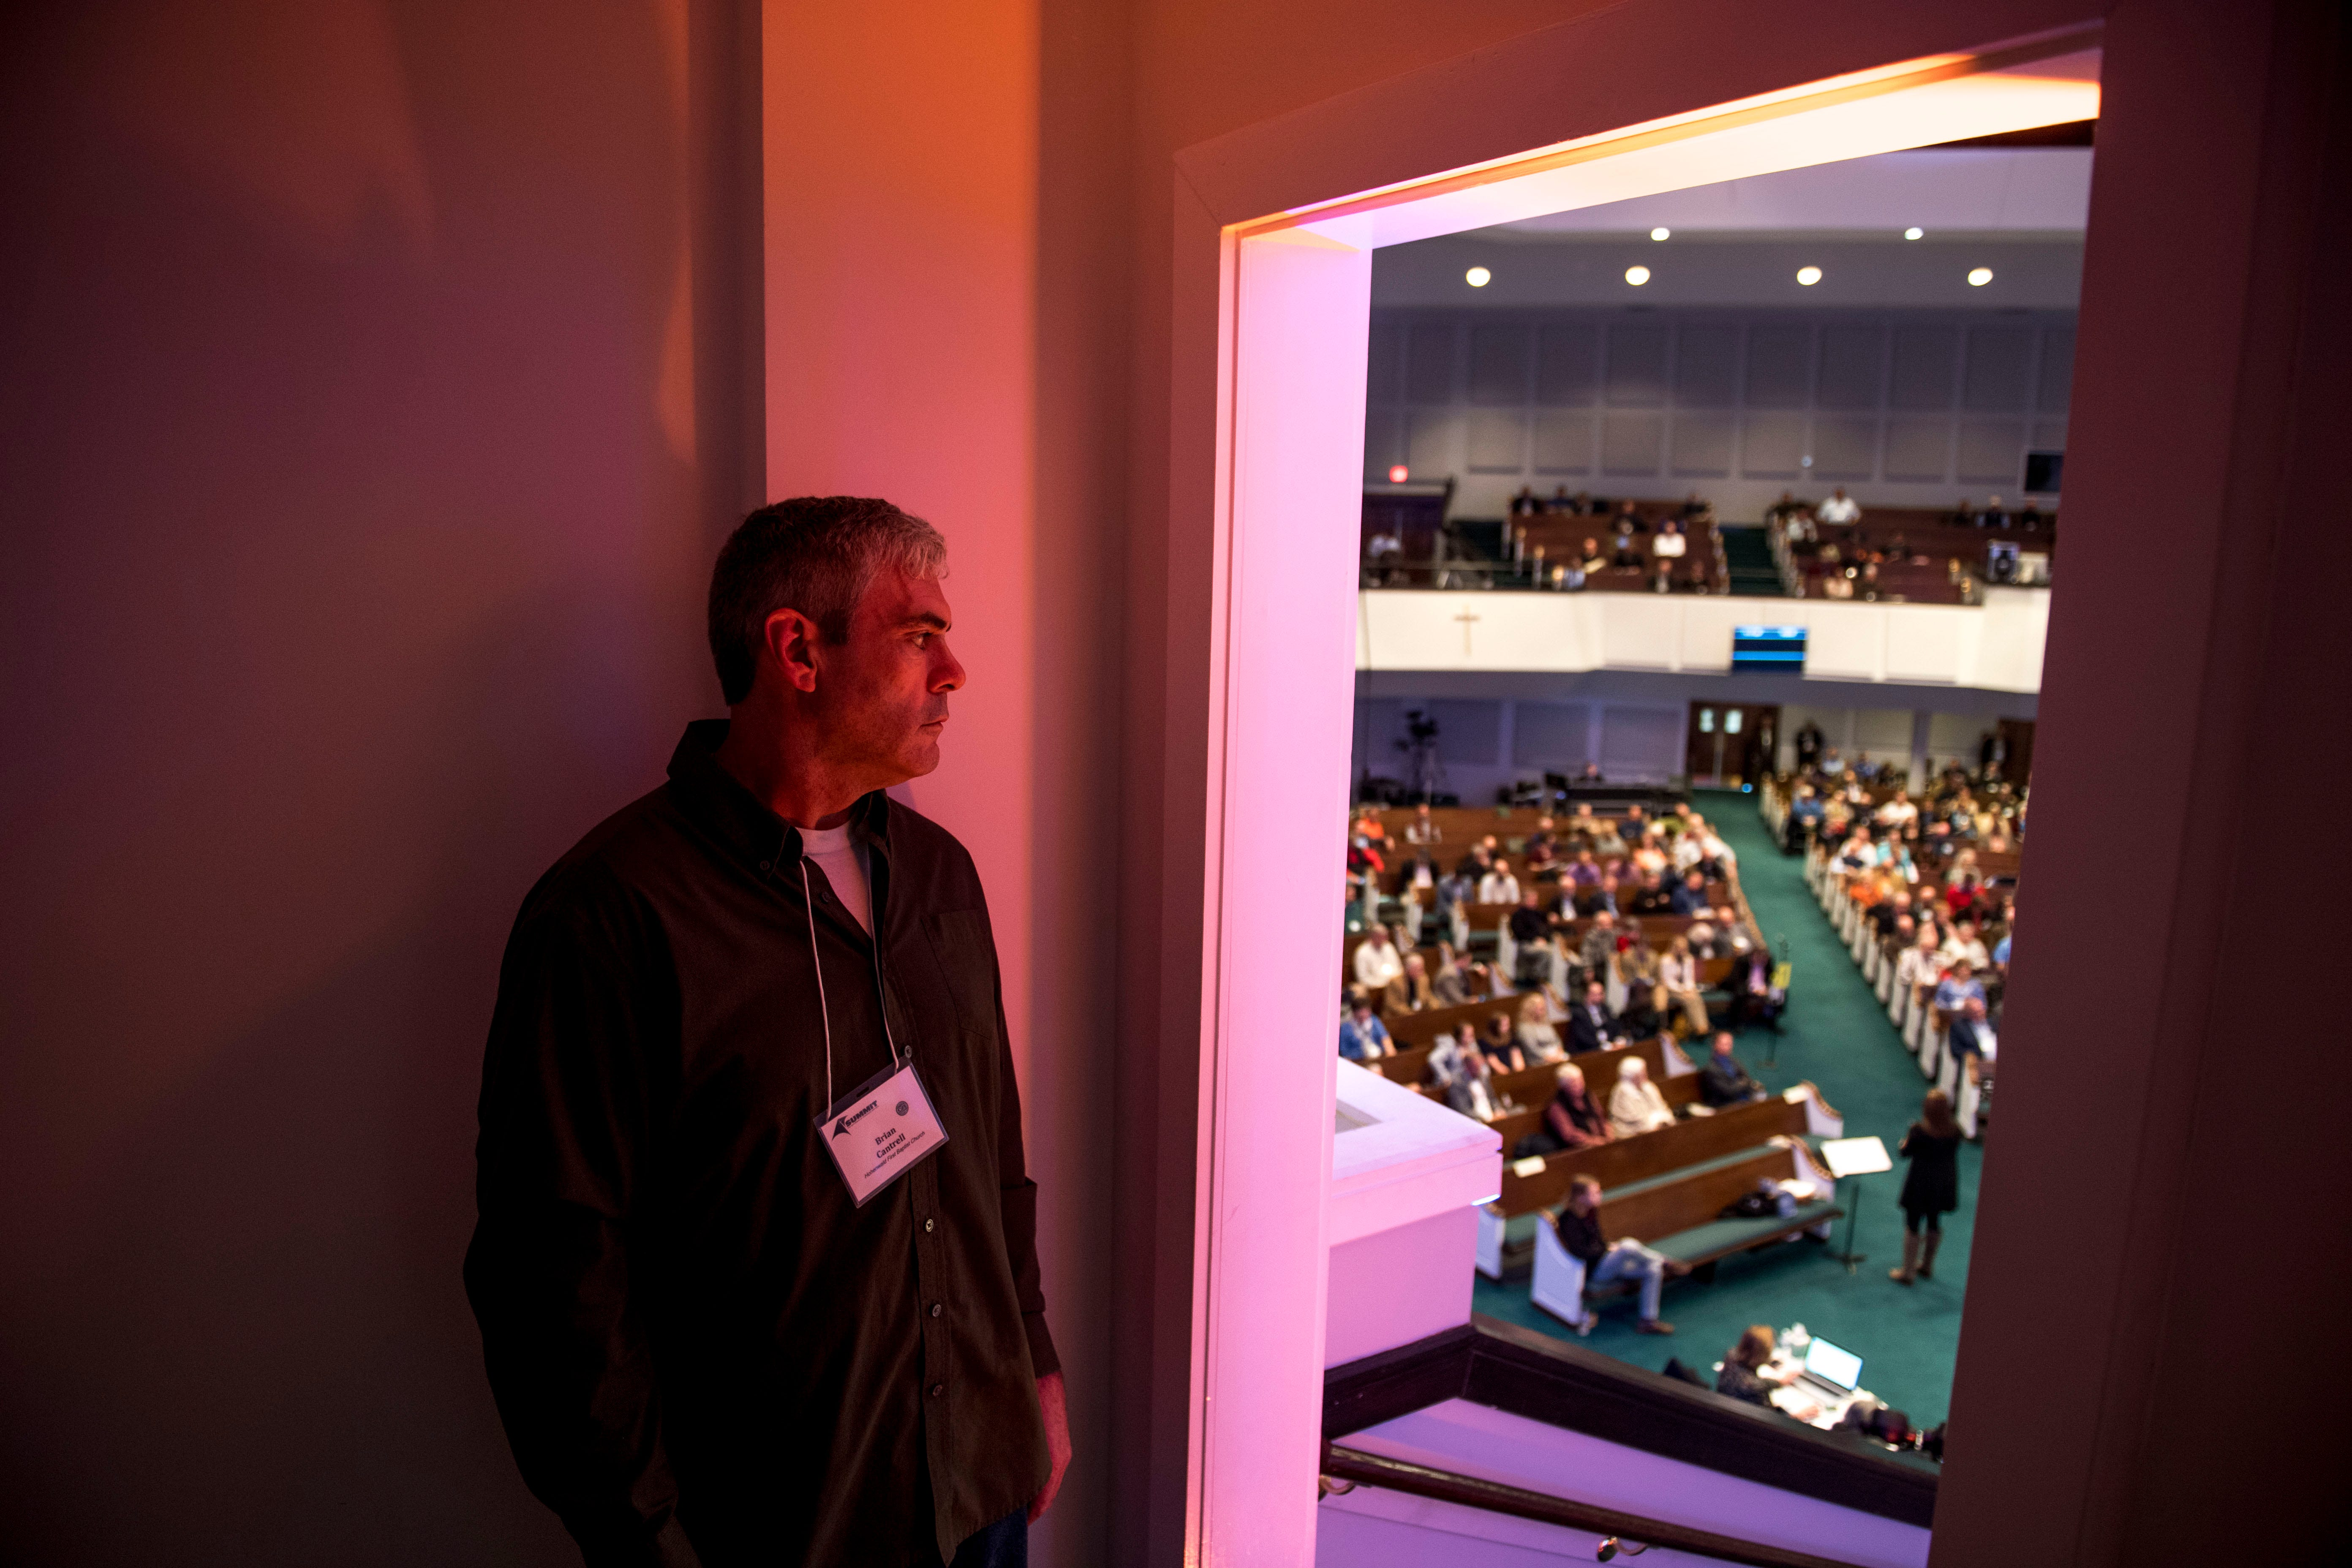 """Brian Cantrell, formerly known as """"Scotty,"""" poses for a portrait during the 2018 Tennessee Baptist Conference Summit at West Jackson Baptist Church in Jackson, Tenn., on Tuesday, Nov. 13, 2018. Brian Cantrell credits his relationship with Jesus Christ that started in December of 2017 for turning his life away from 30 years of drug addiction to being sober and working for a church in Hohenwald."""